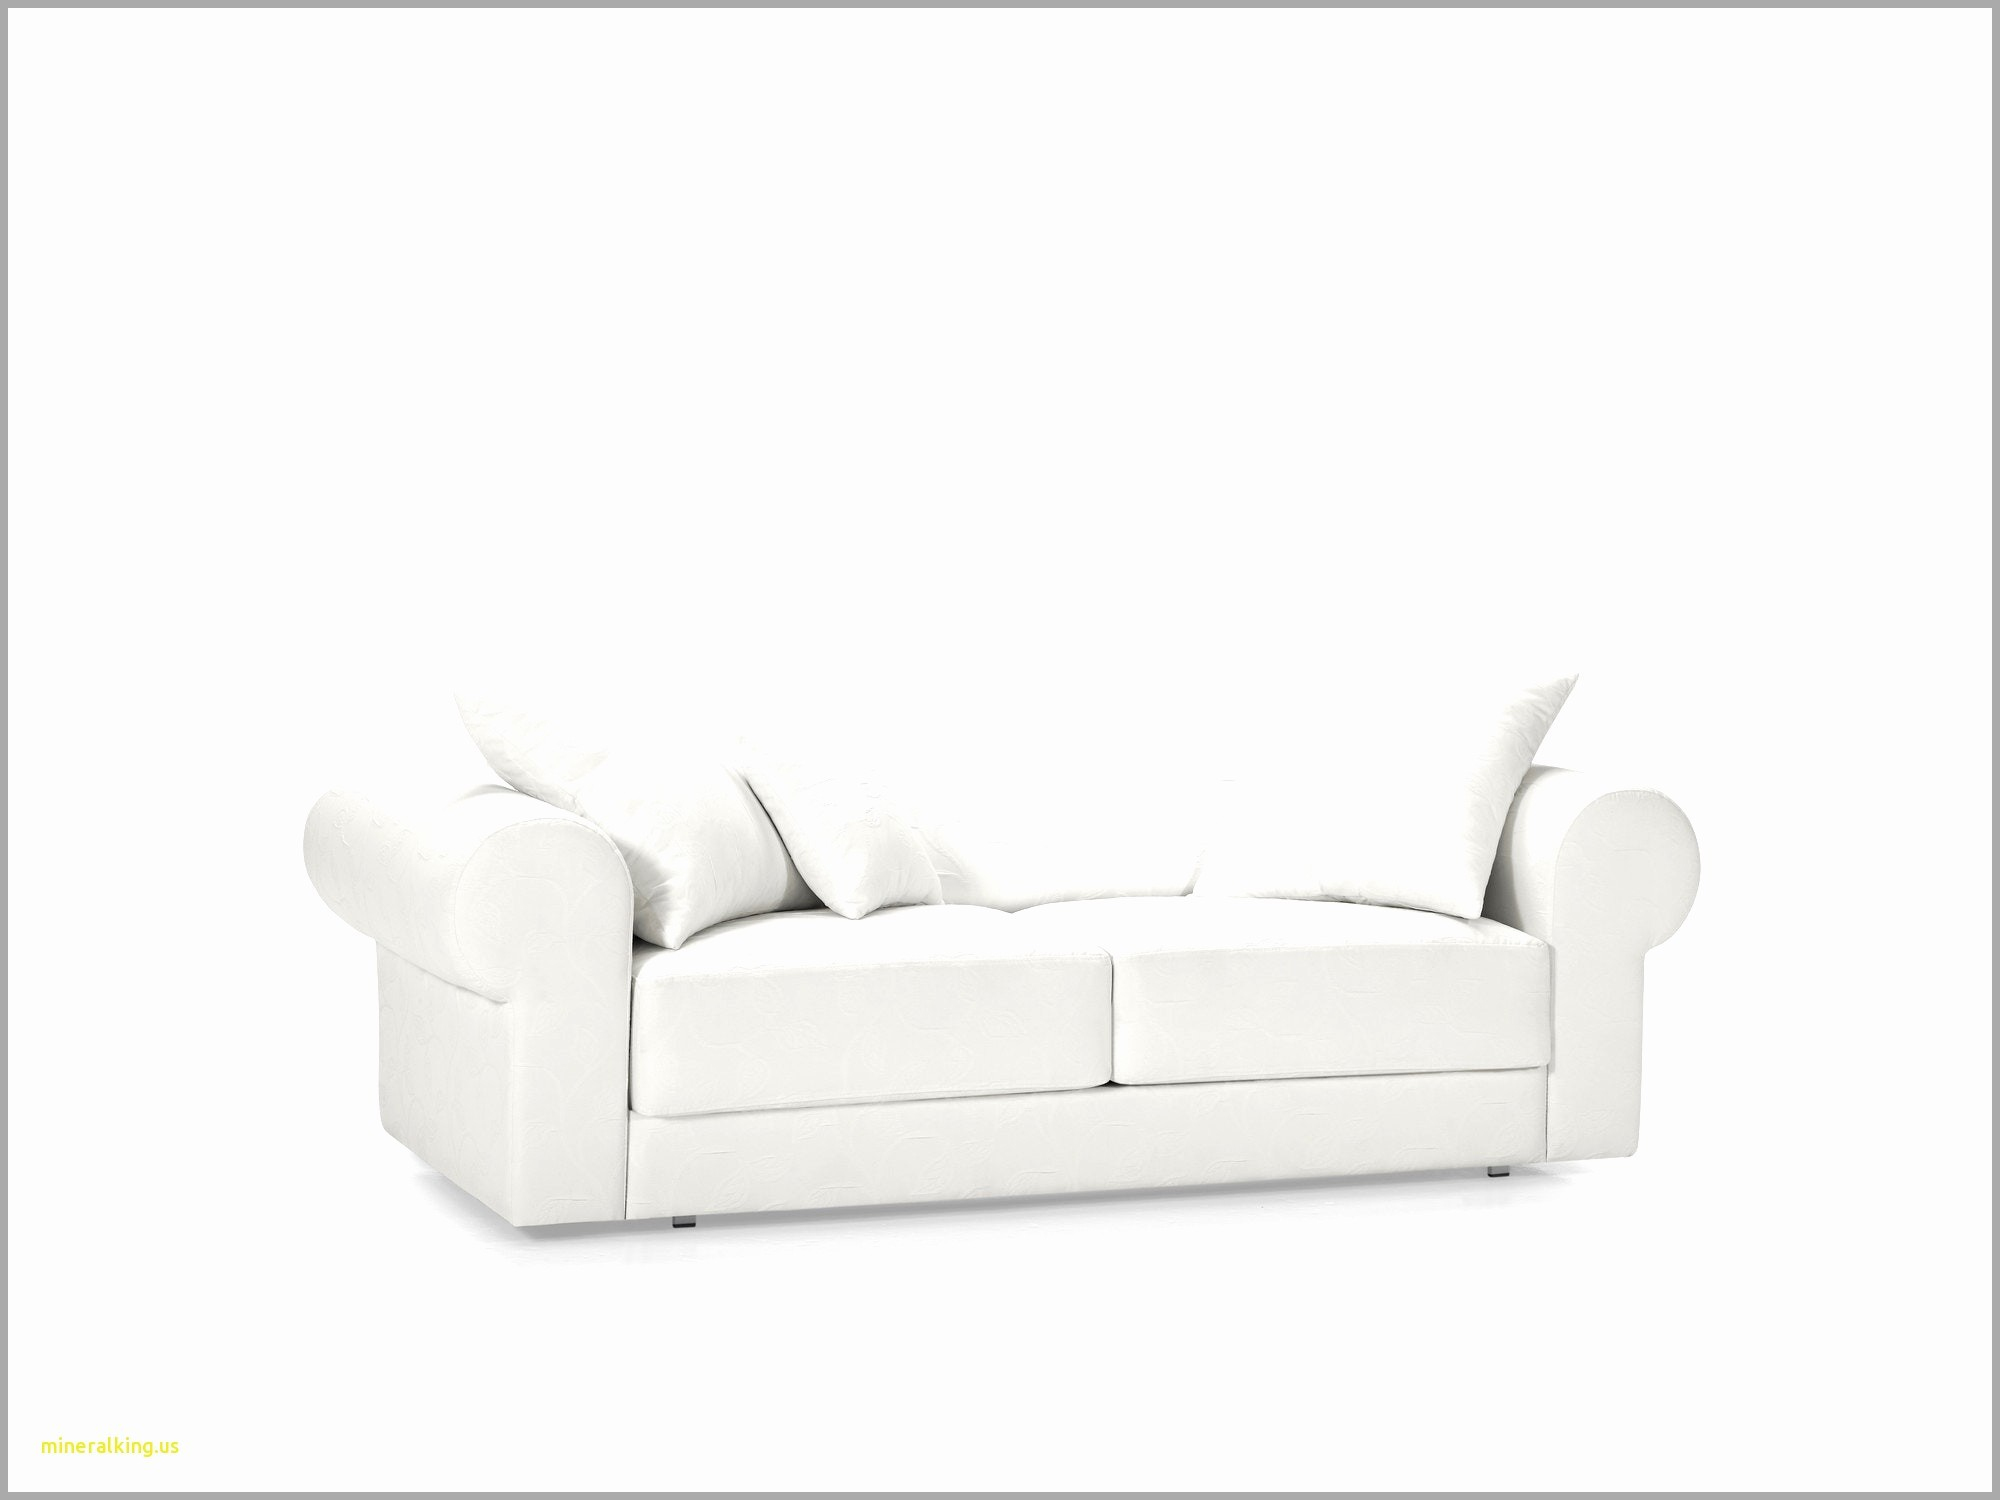 Canapé D Angle Ikea Convertible Nouveau Collection Canap Blanc Good Canape D Angle Places Avec Canap N to Madrid Gris